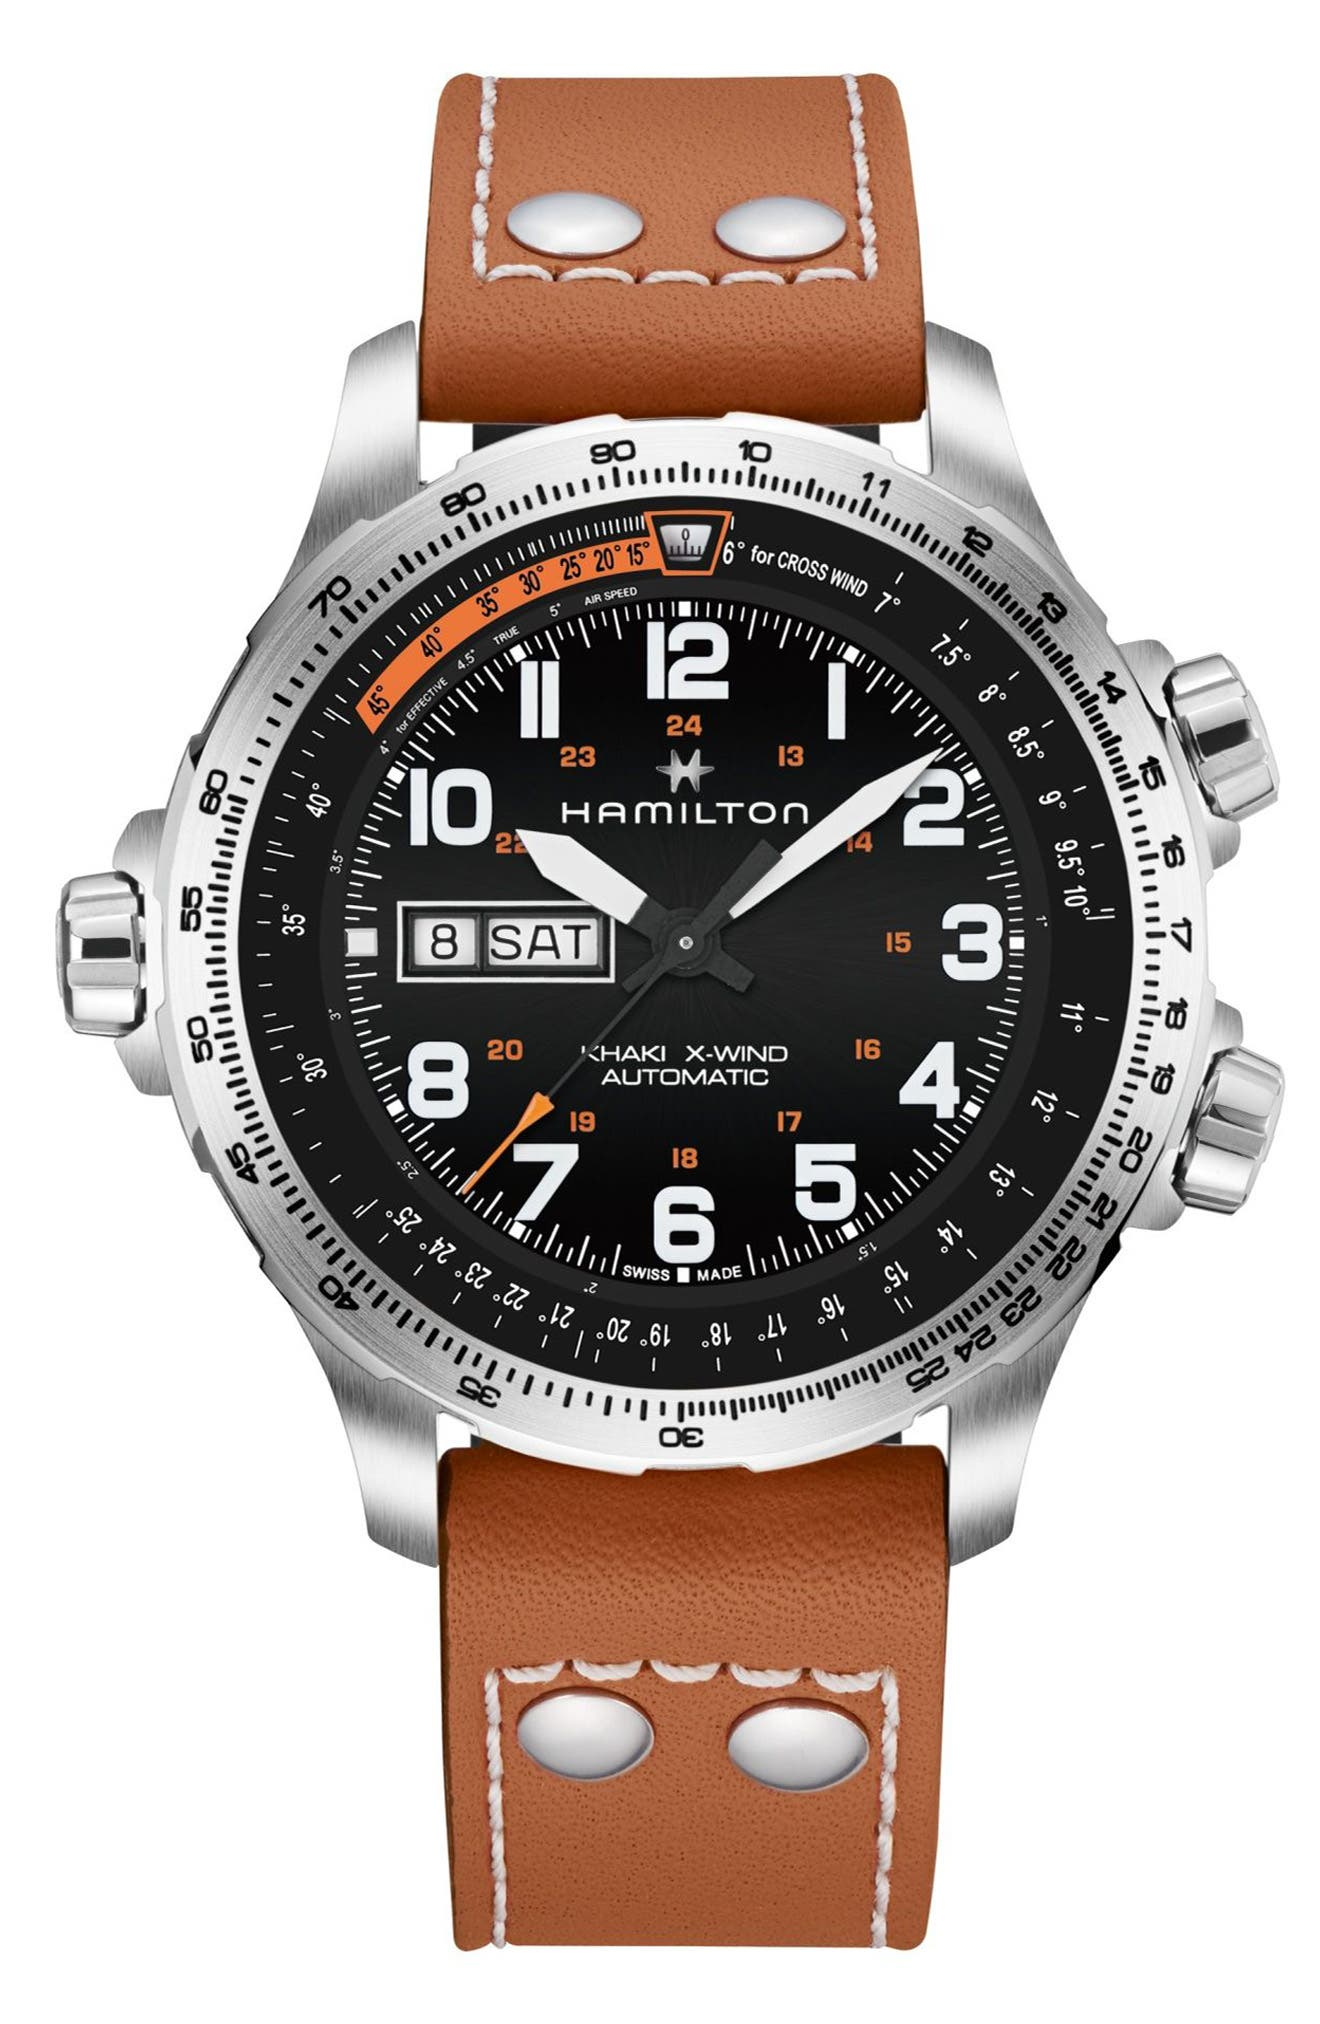 Main Image - Hamilton Khaki X-Wind Automatic Chronograph Leather Strap Watch, 45mm